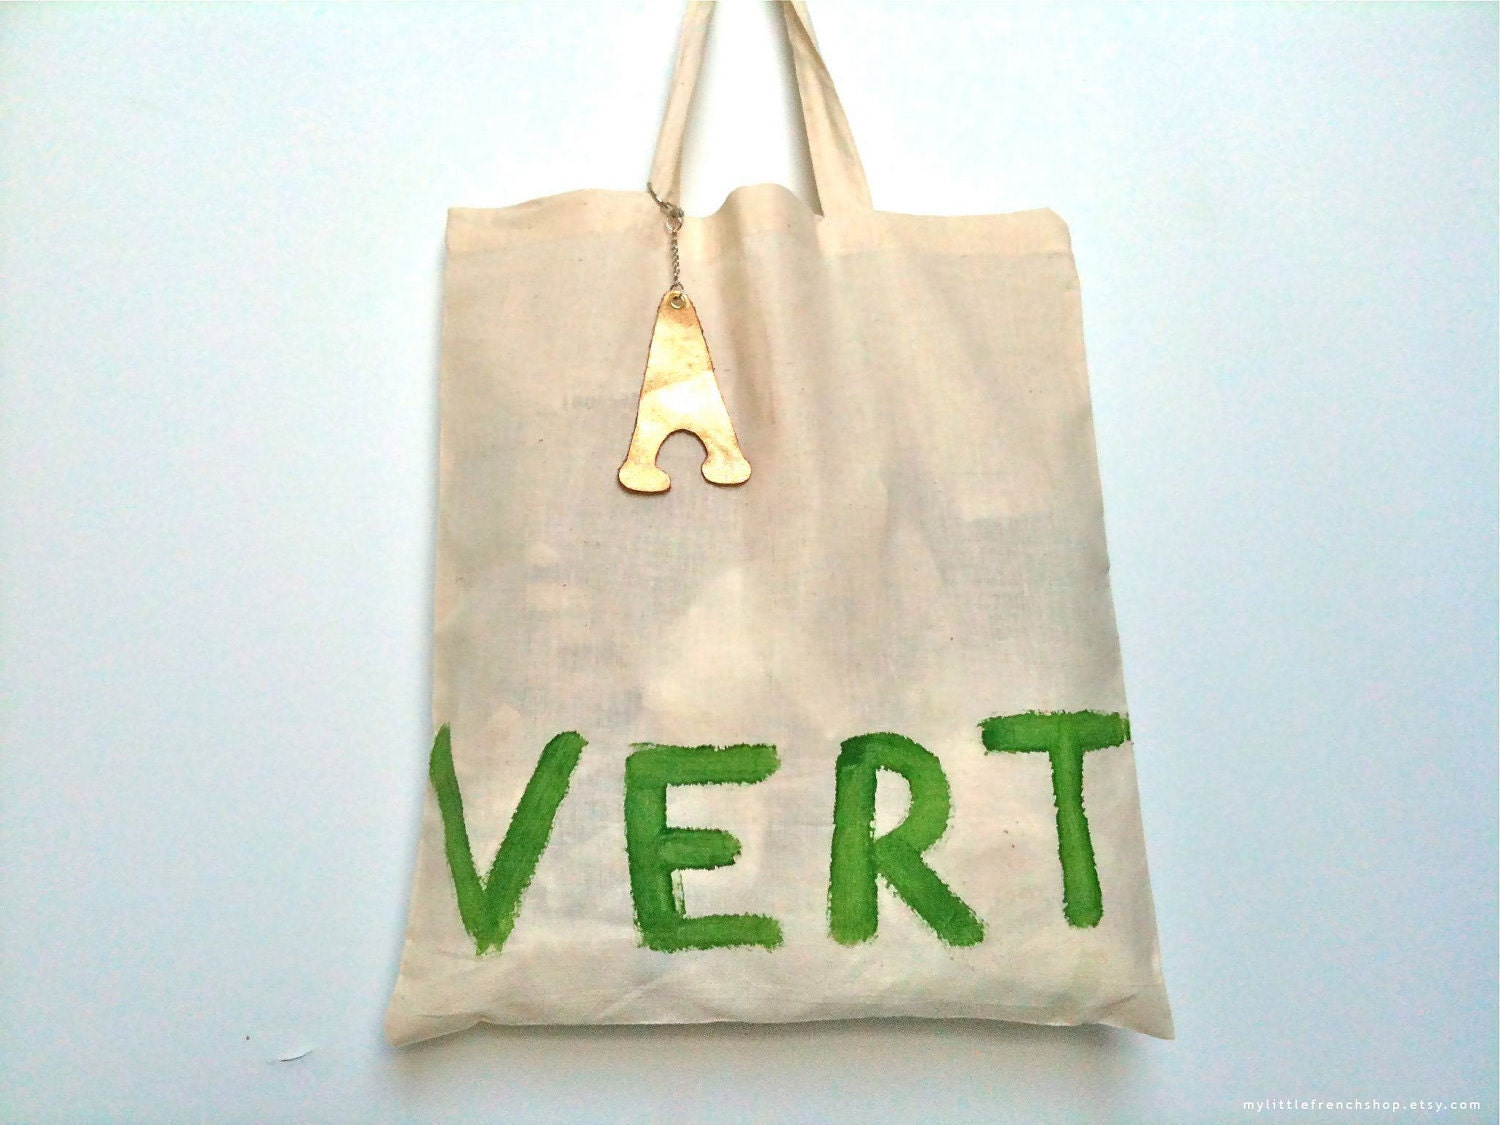 Vert TOTE Bag - French - Natural/Green - Eco - Eiffel Tower - MyLittleFrenchShop